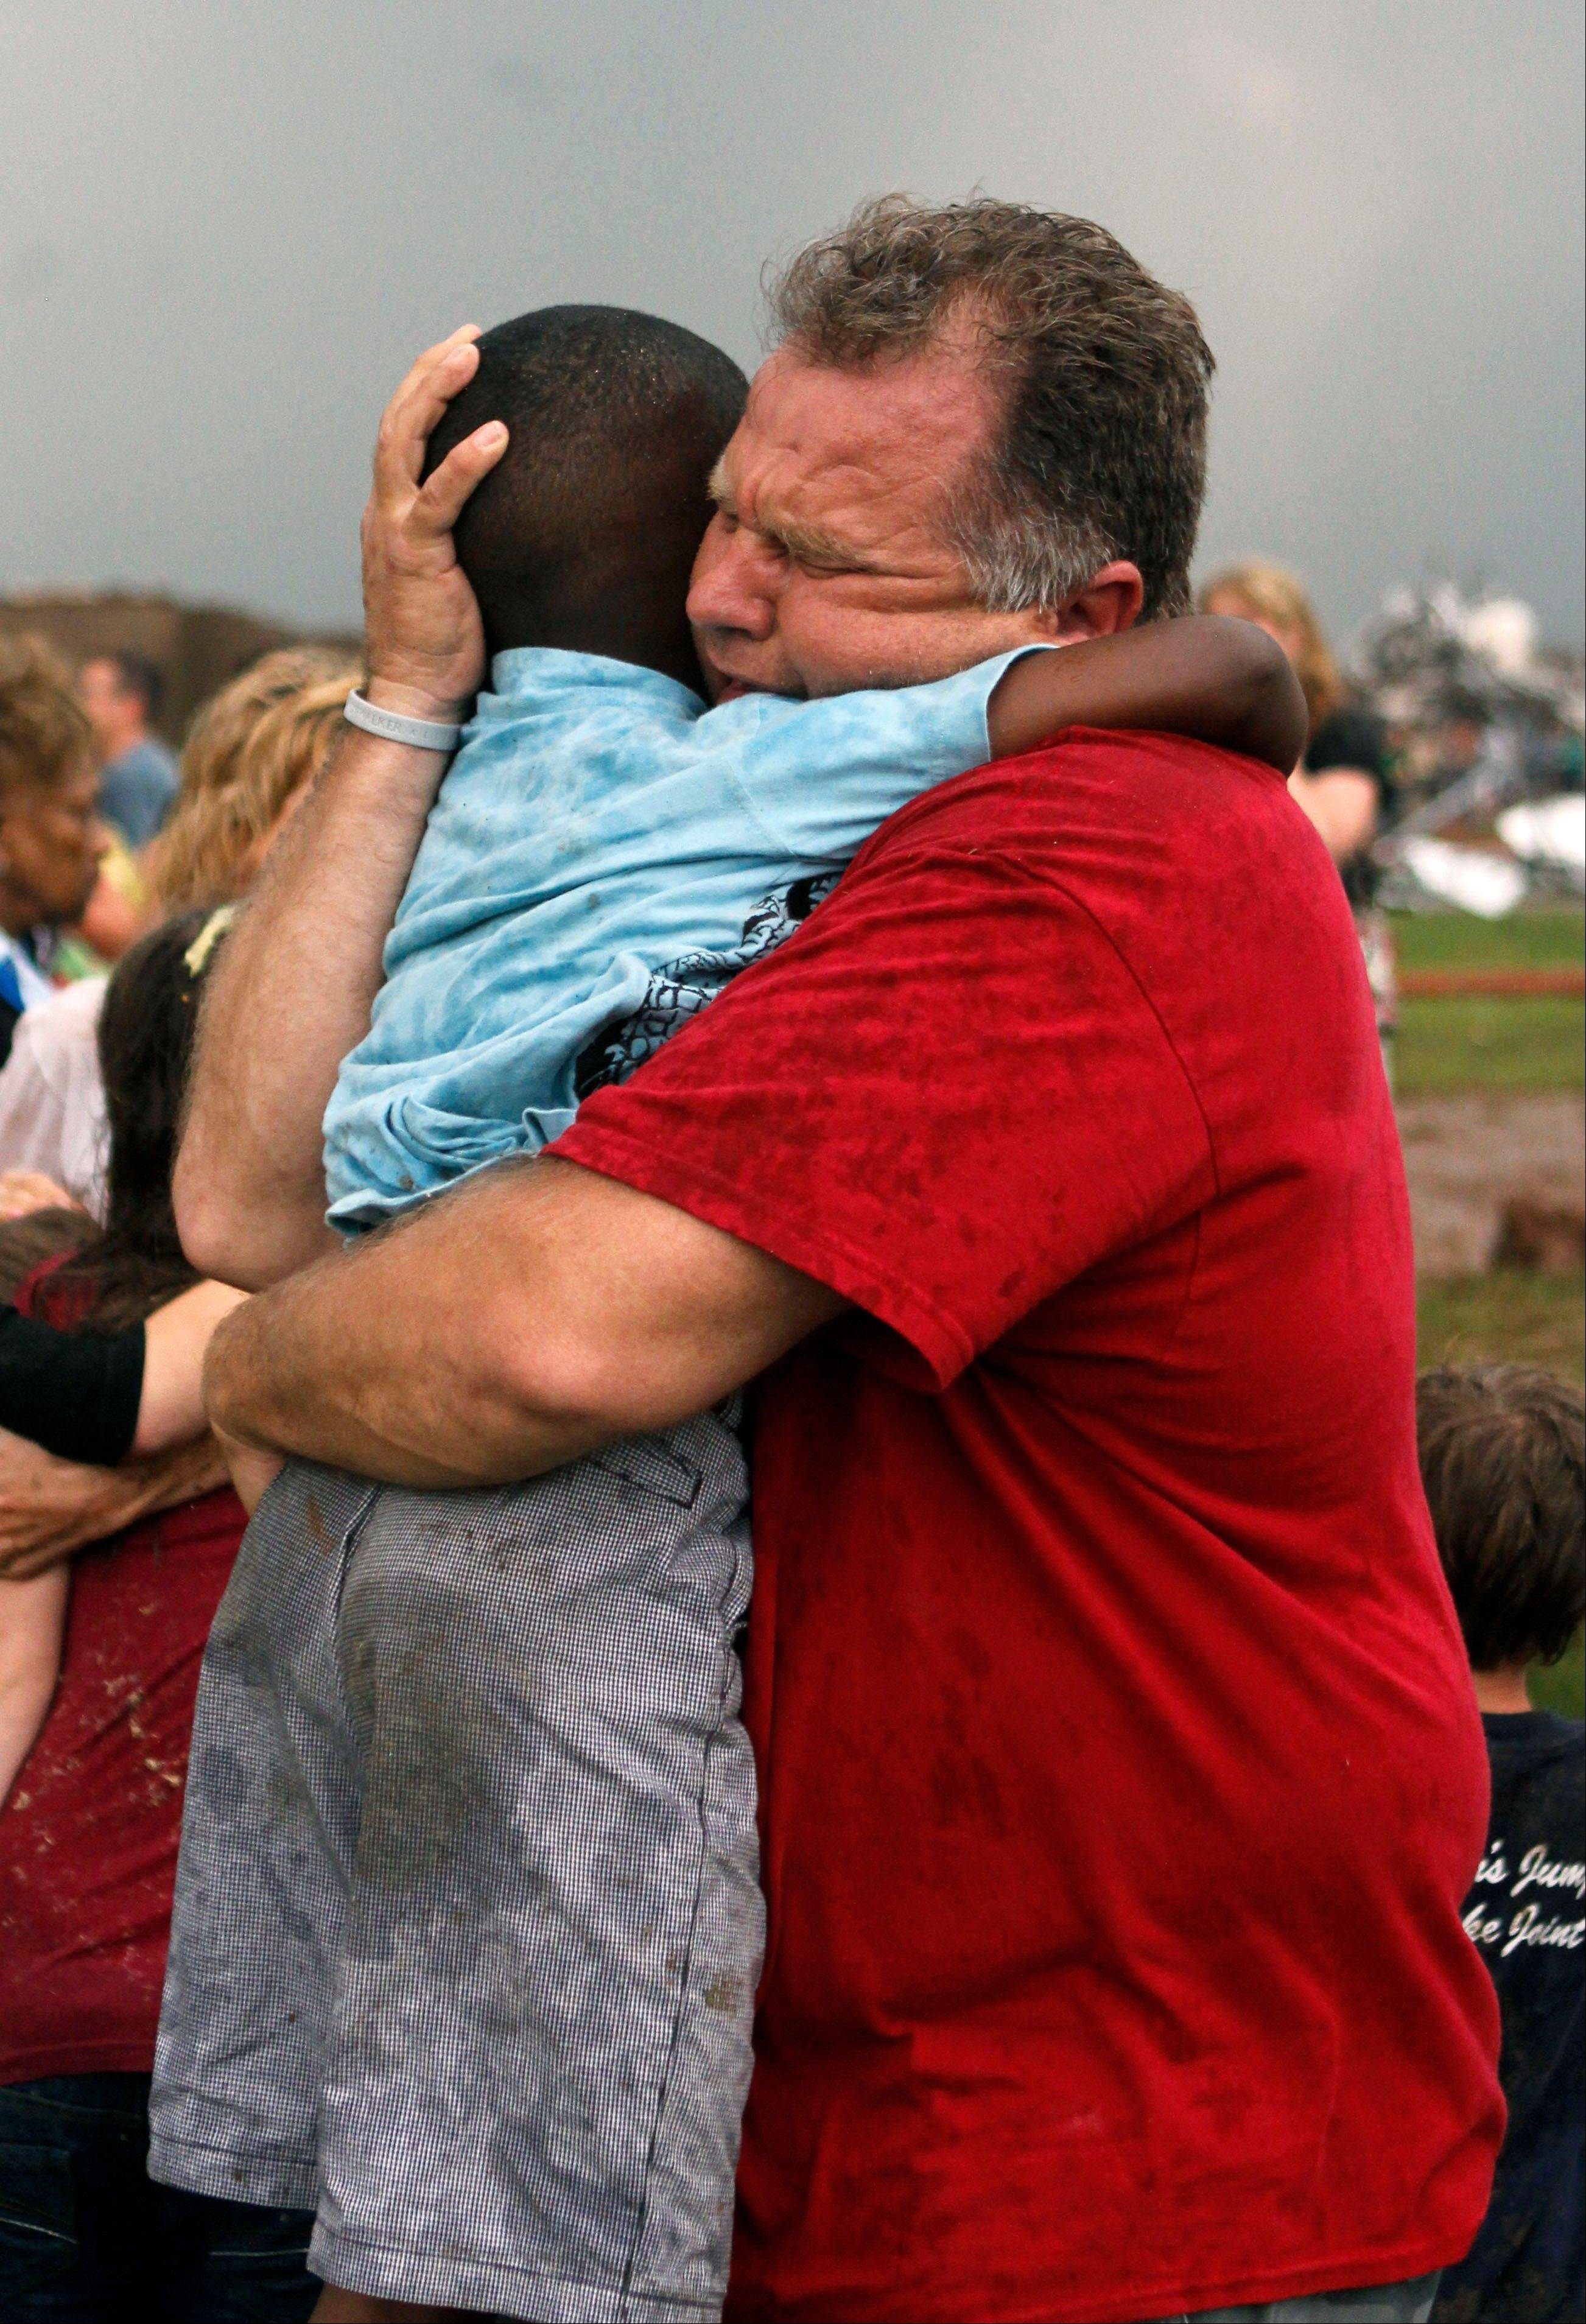 A teacher hugs a child at Briarwood Elementary school after a tornado destroyed the school in south Oklahoma City, Monday, May 20, 2013. A monstrous tornado roared through the Oklahoma City suburbs, flattening entire neighborhoods with winds up to 200 mph, setting buildings on fire and landing a direct blow on an elementary school.